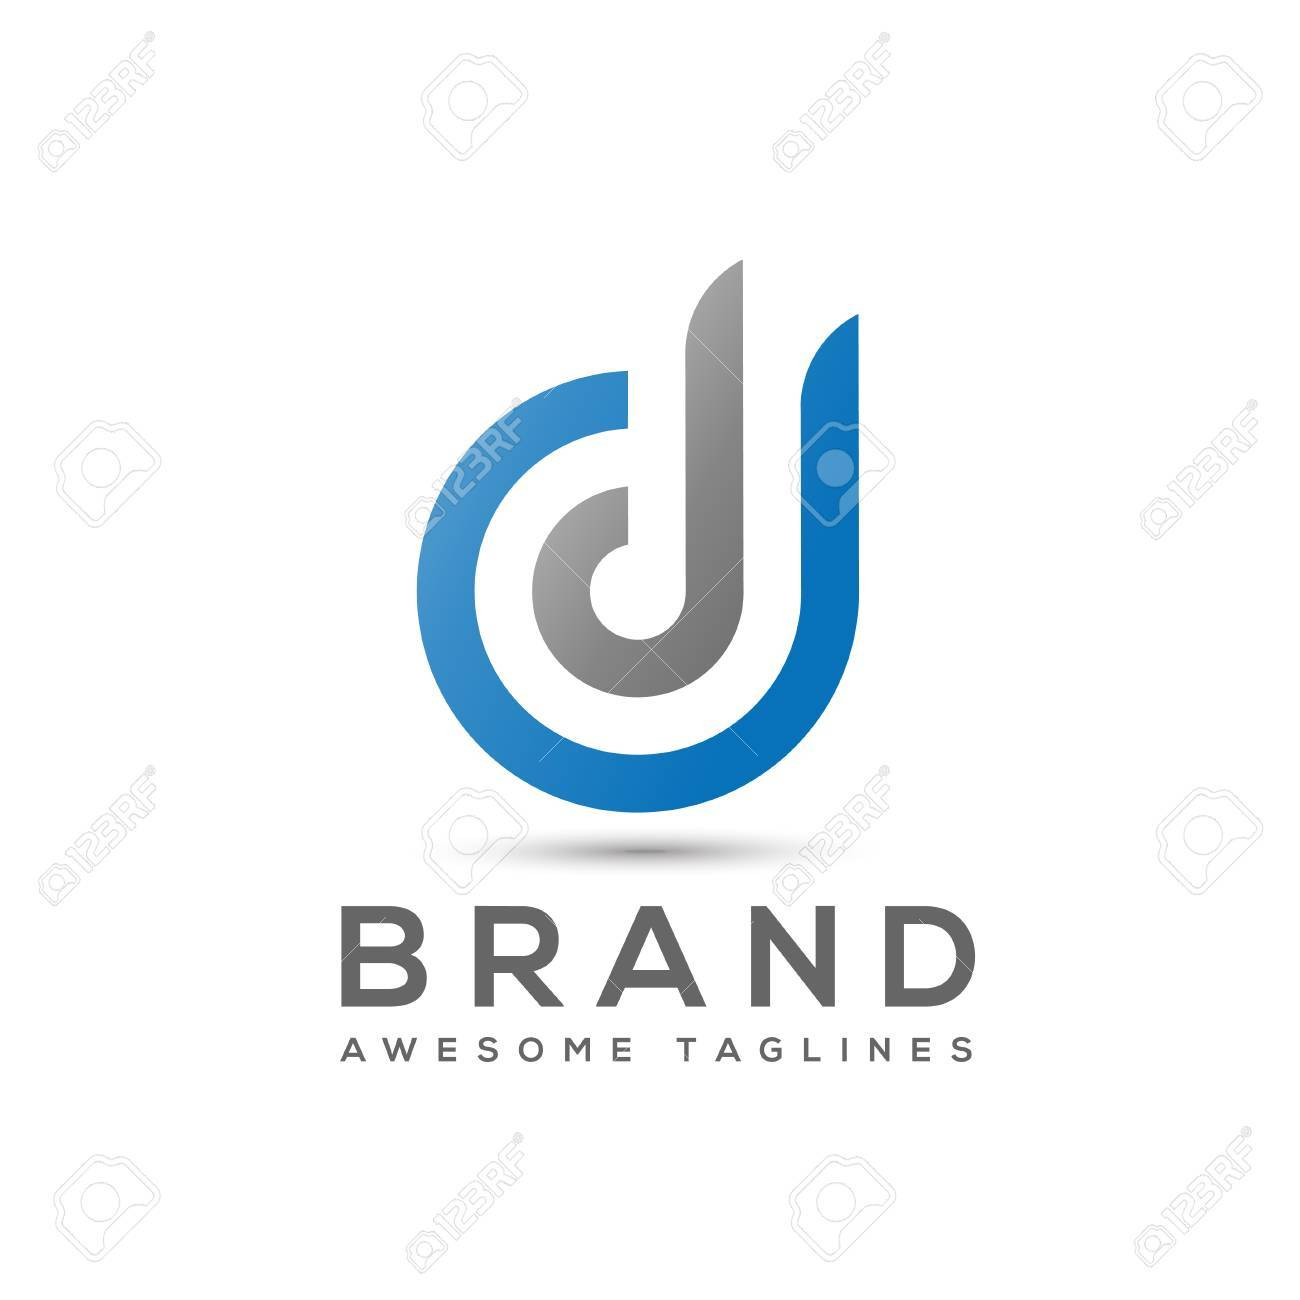 abstract letter d logo design template elements abstract letter ddbusiness corporate letter dd